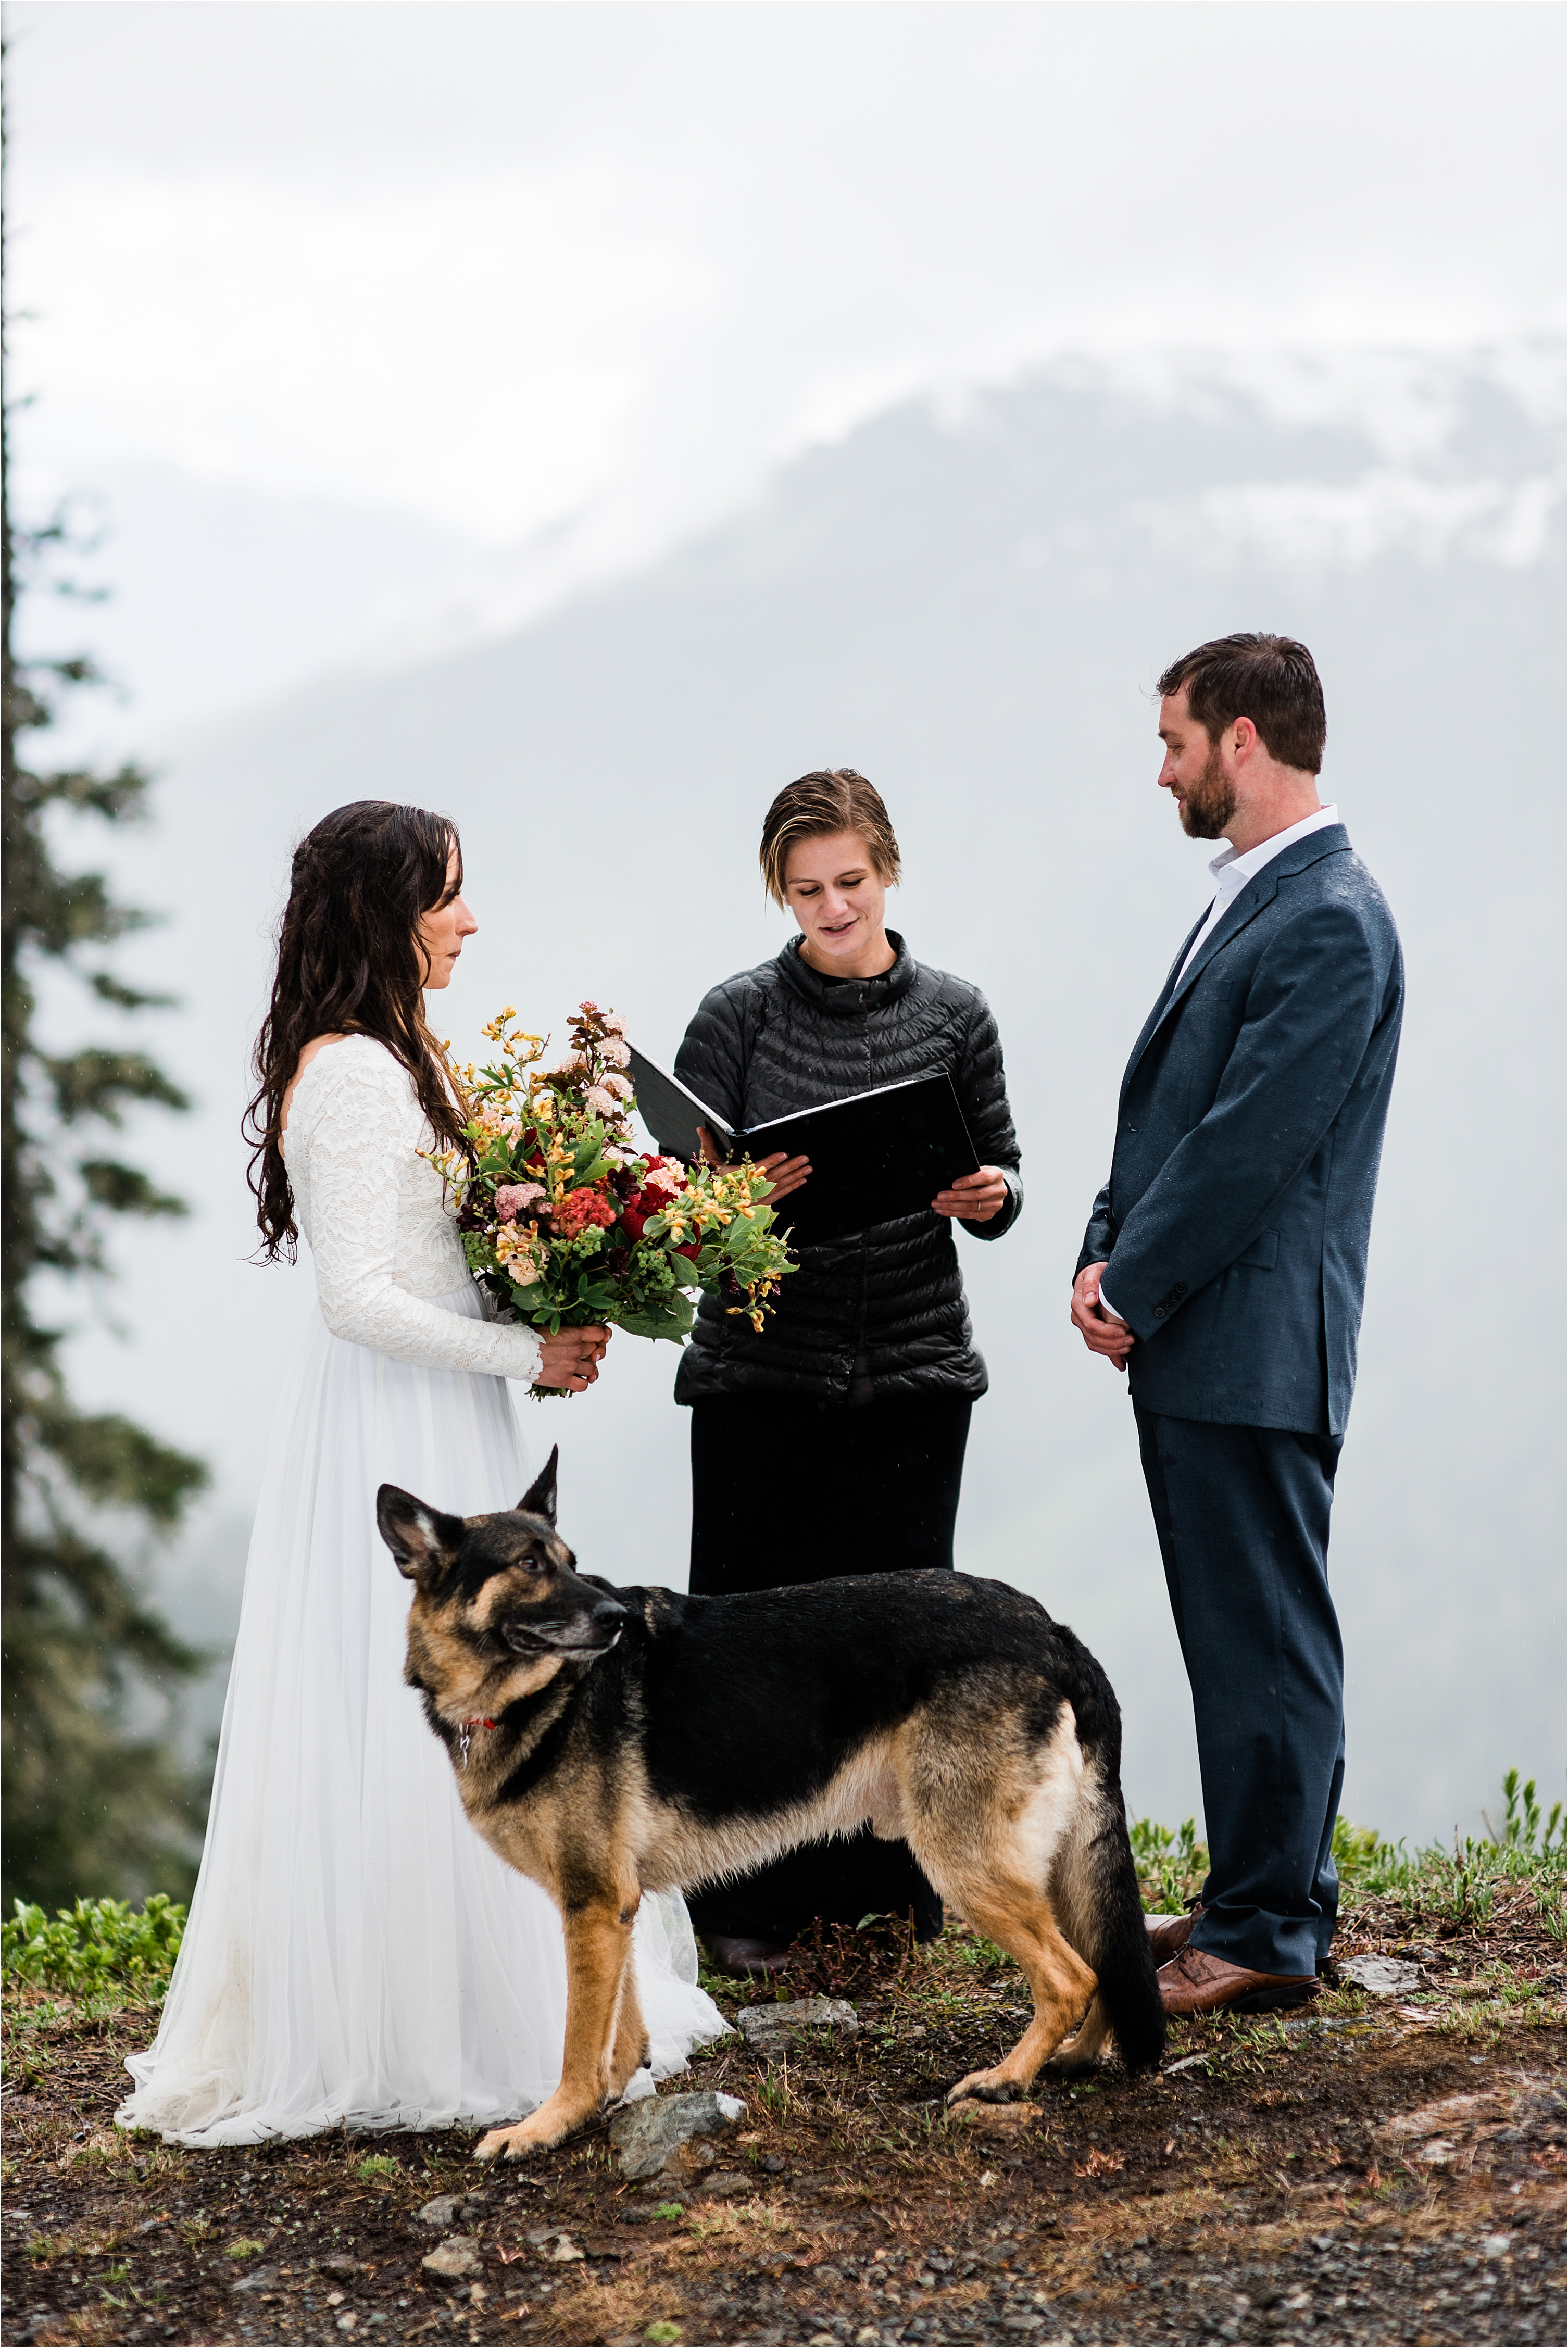 Christina & Tanner's dog stands watch during their elopement ceremony in the North Cascades. Image by Forthright Photo, PNW Wedding Photographers.